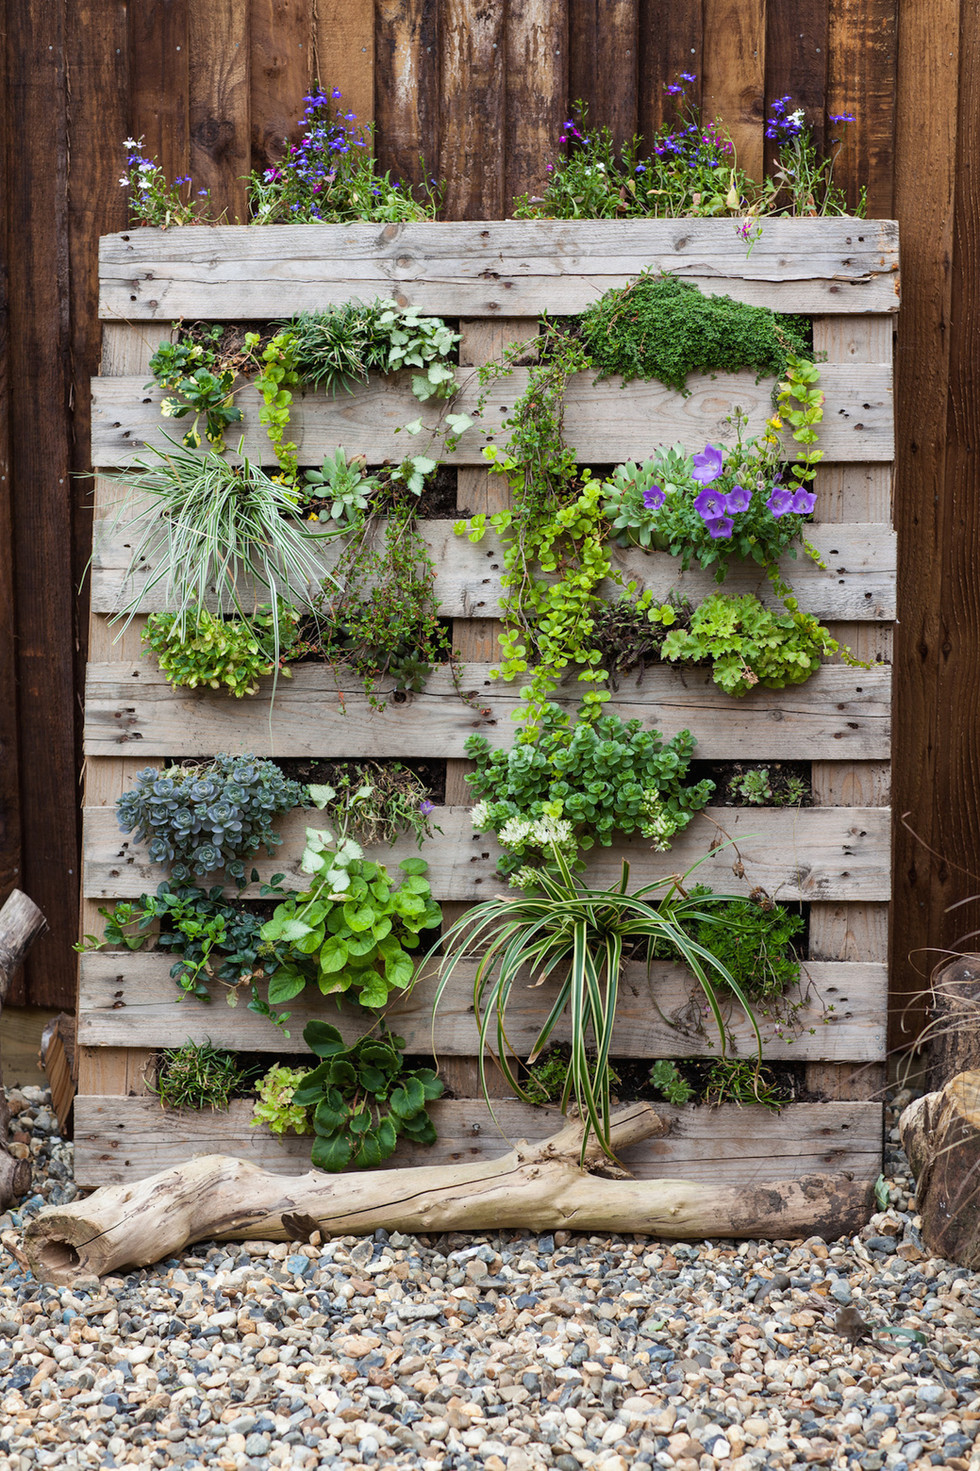 Upcycled pallet planter by Simon Orchard Garden Design